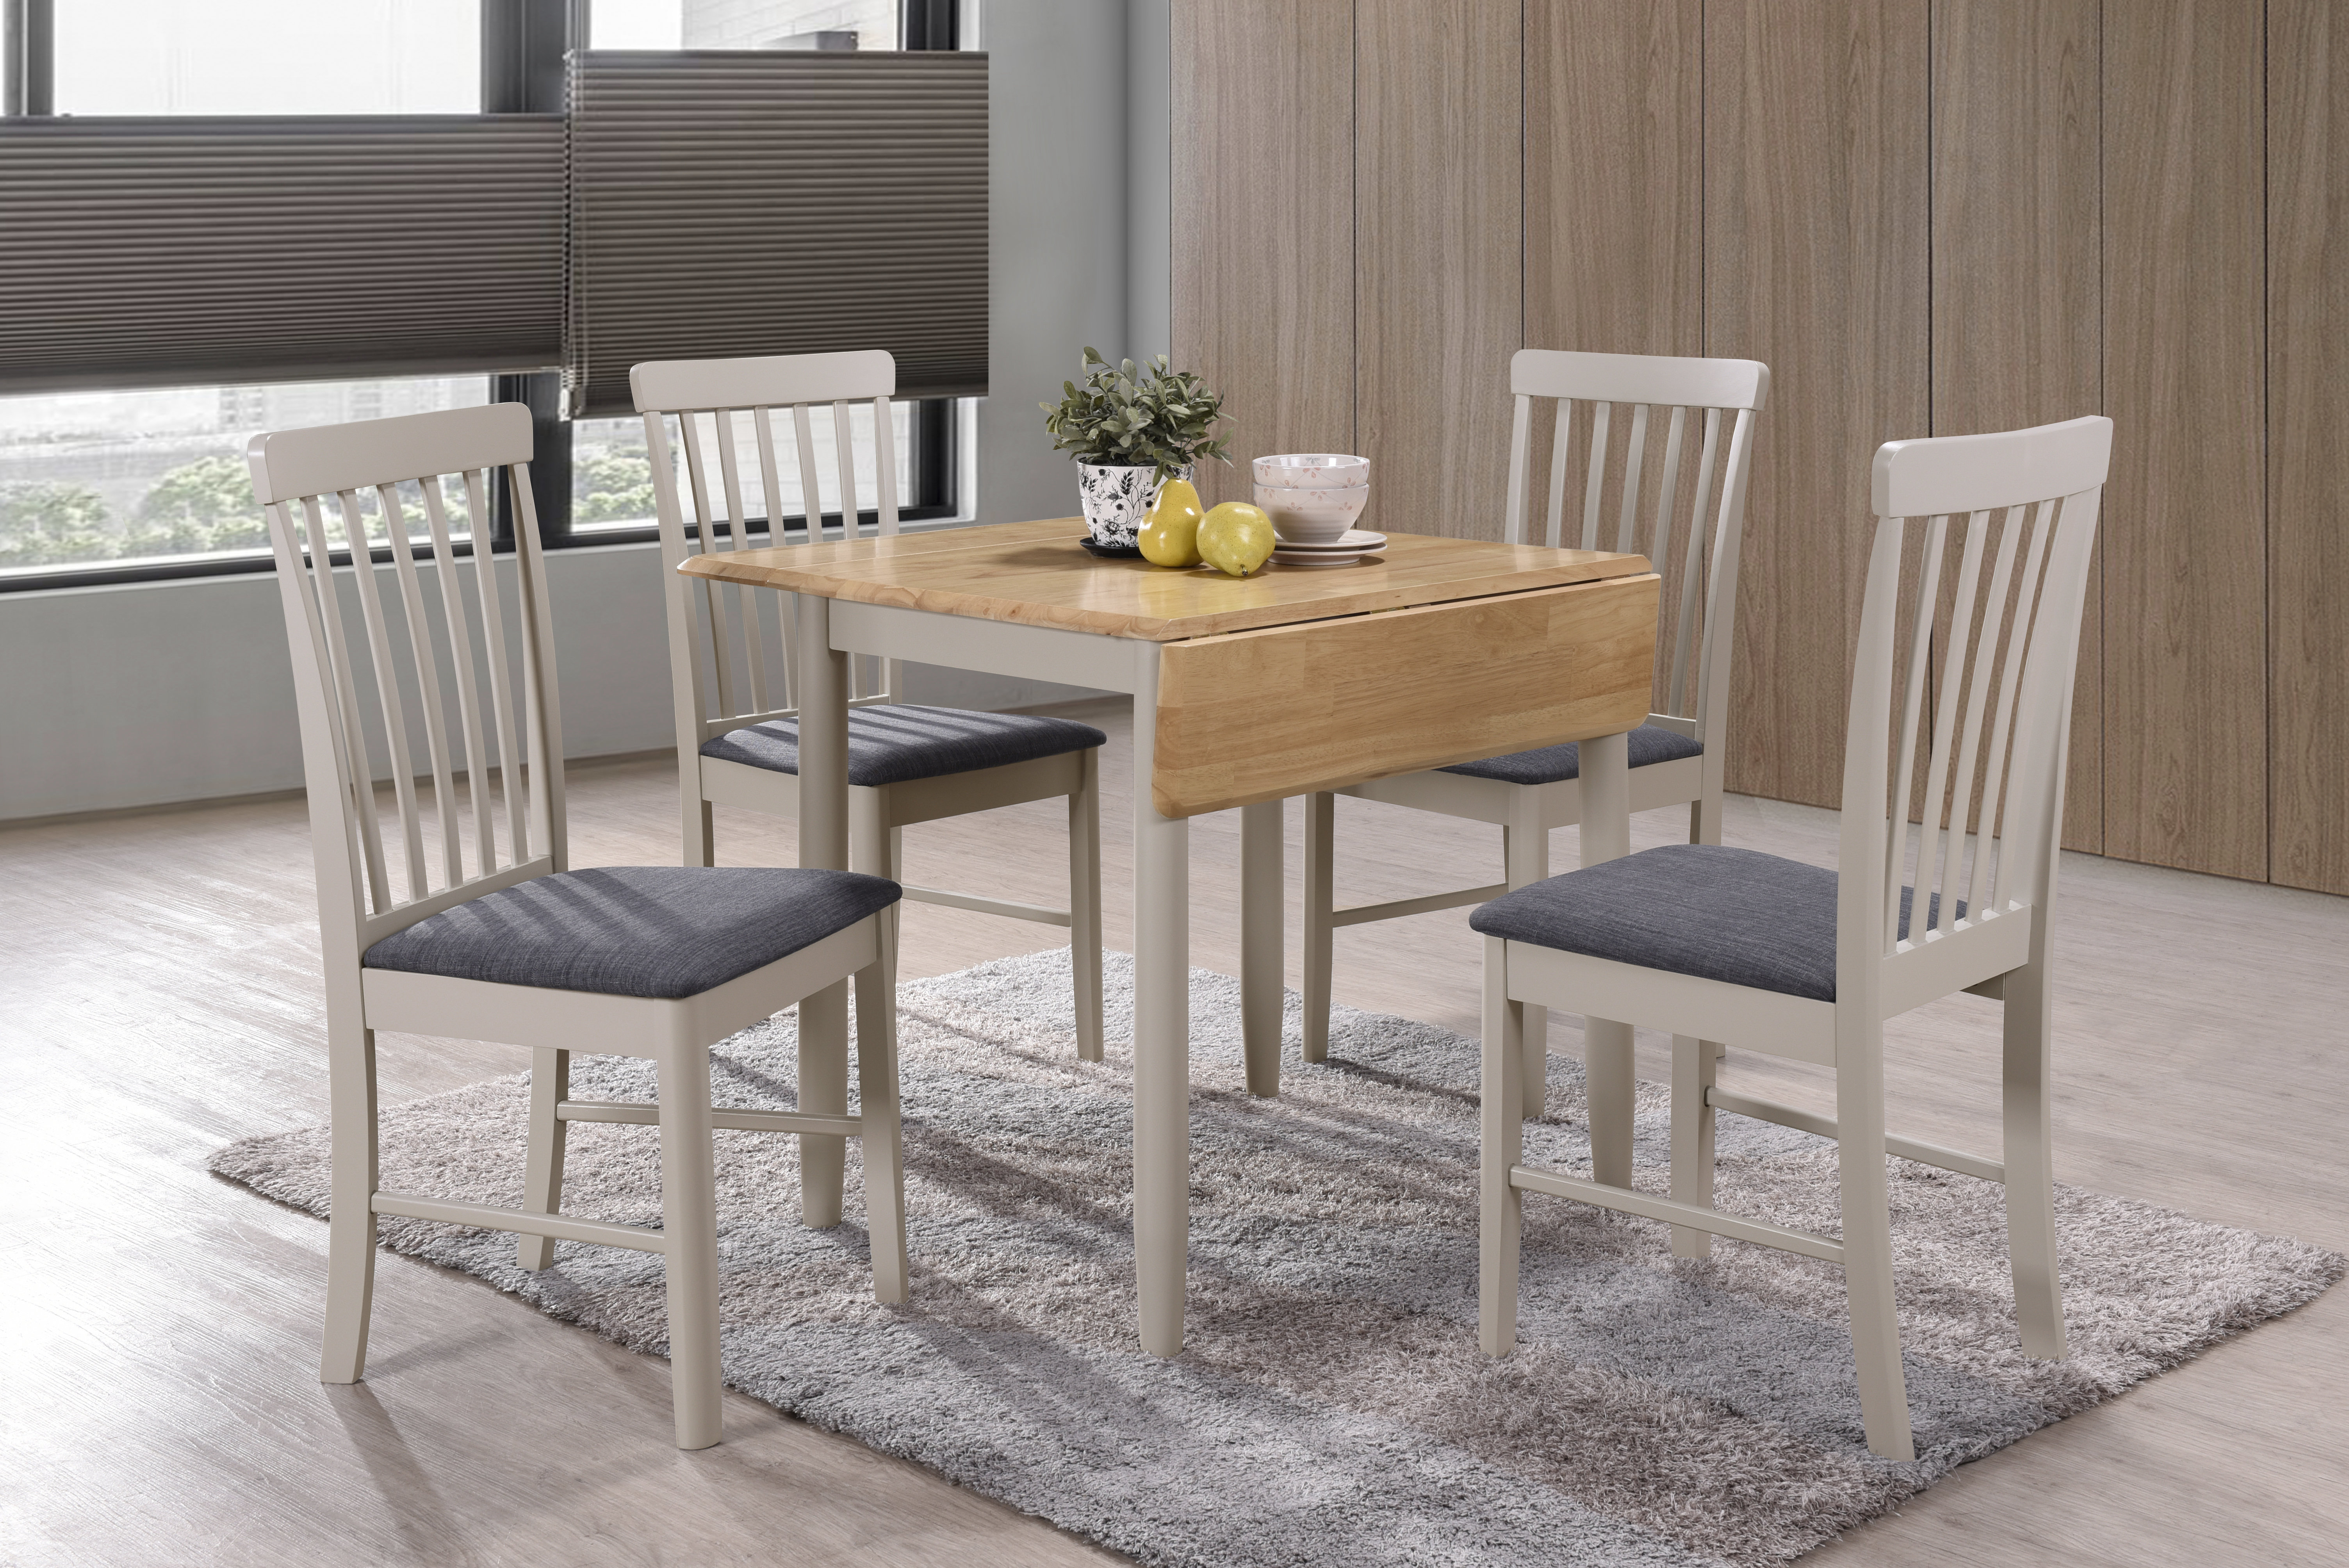 Brentwood Folding/extendable Dining Table Inside 2017 Northwoods 3 Piece Dining Sets (View 6 of 20)